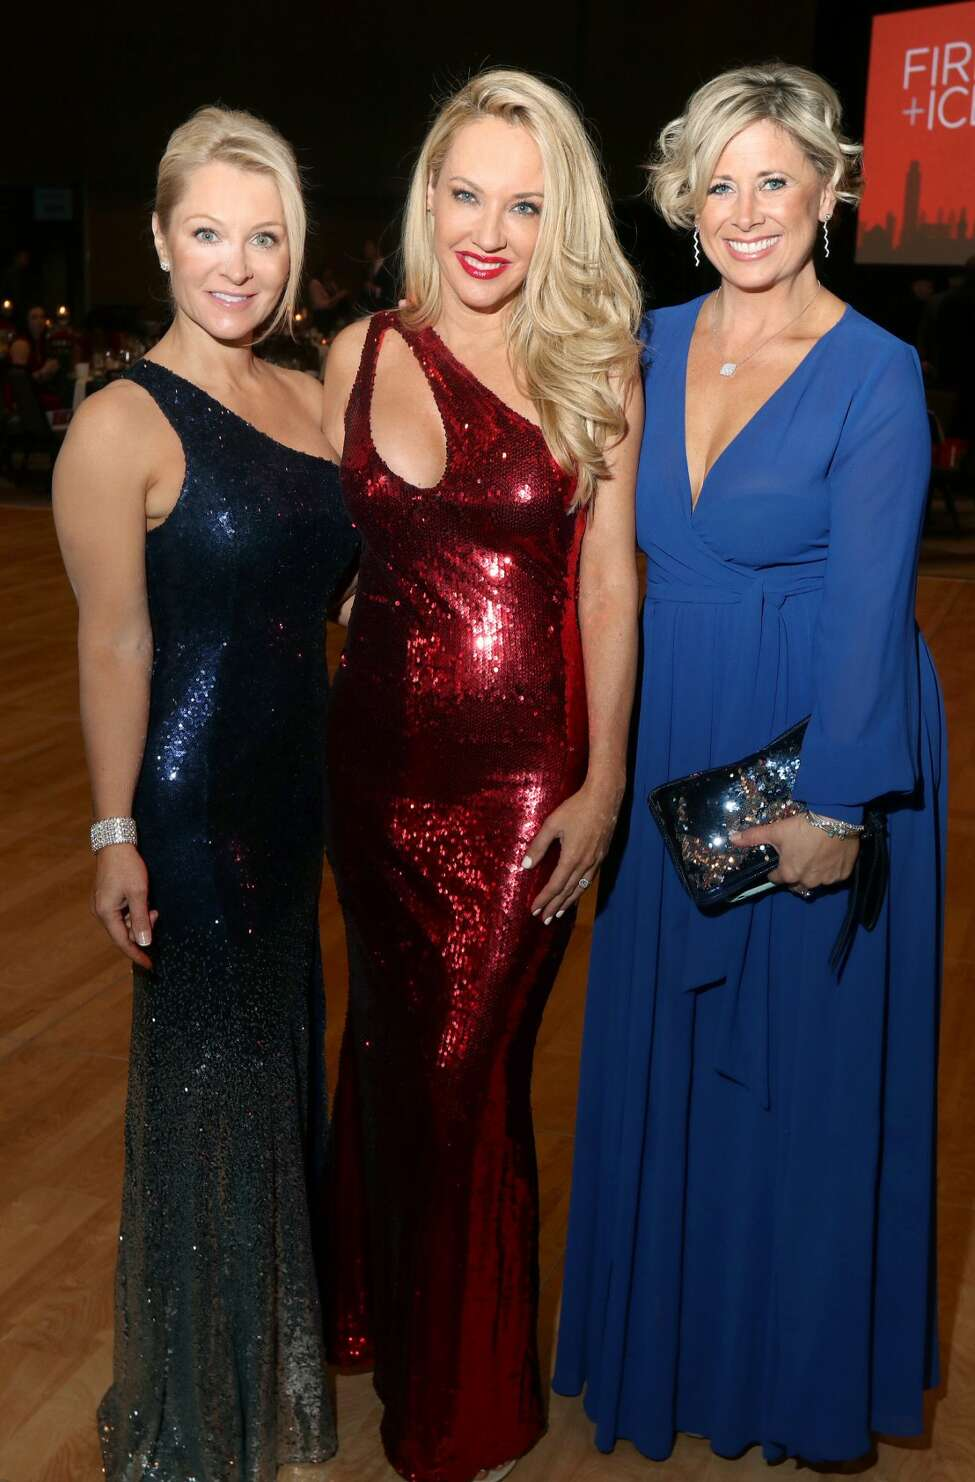 Were You Seen at the American Red Cross of Northeastern New York's Fire + Ice Gala at the Albany Capital Center on Saturday,April 6, 2019?